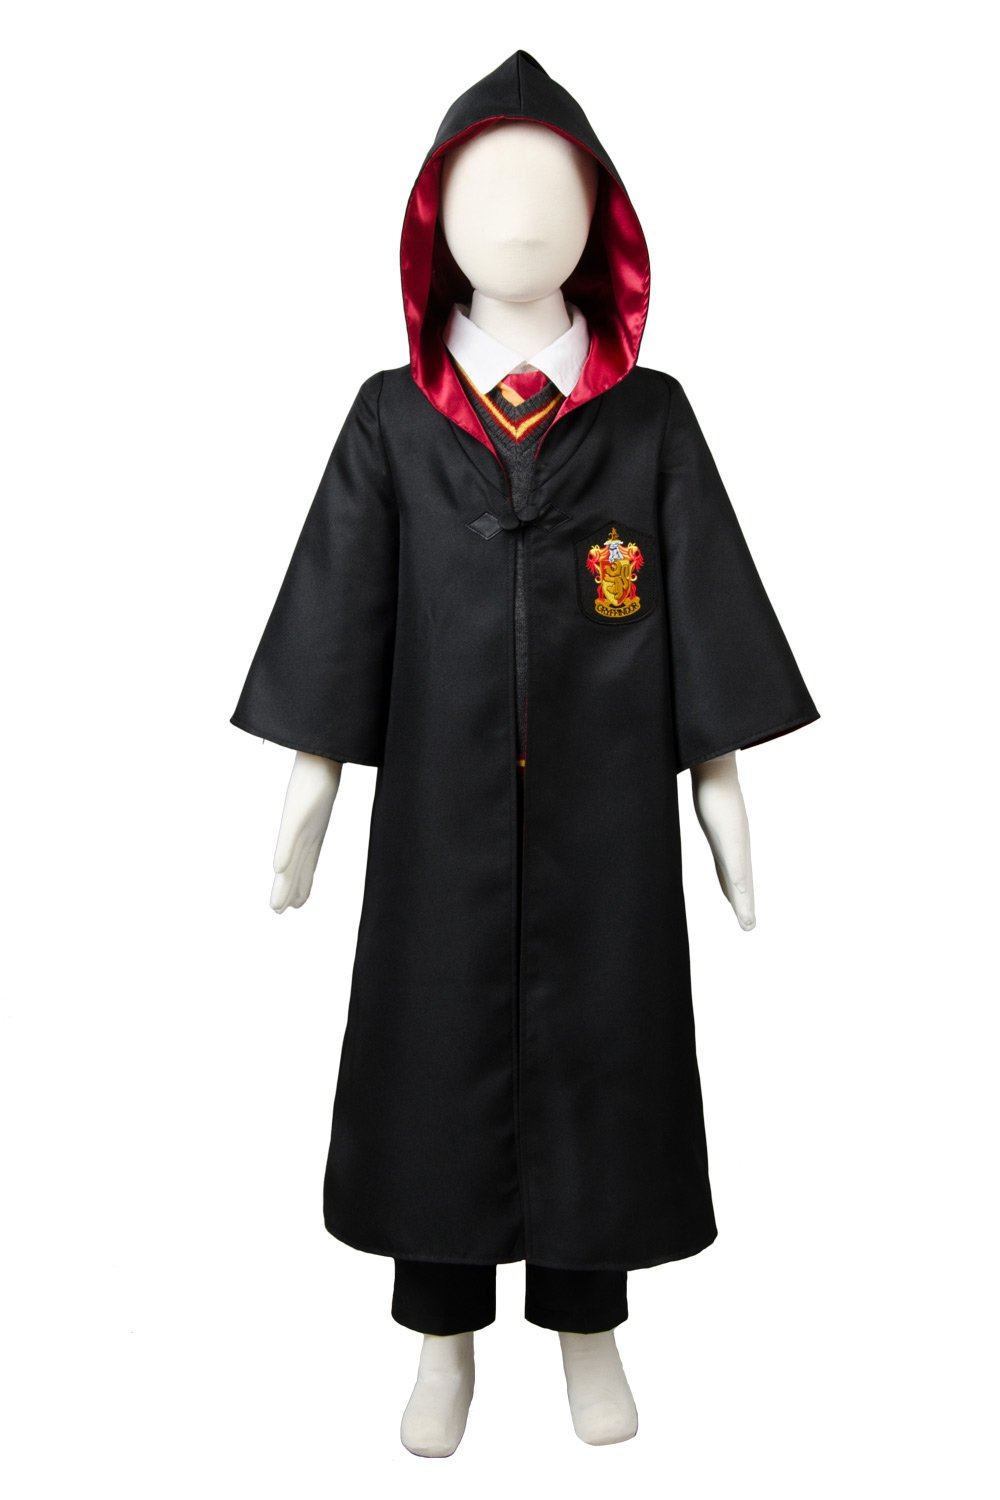 Harry Potter Gryffindor Robe Uniforme Harry Potter Cosplay Costume Pour Enfant